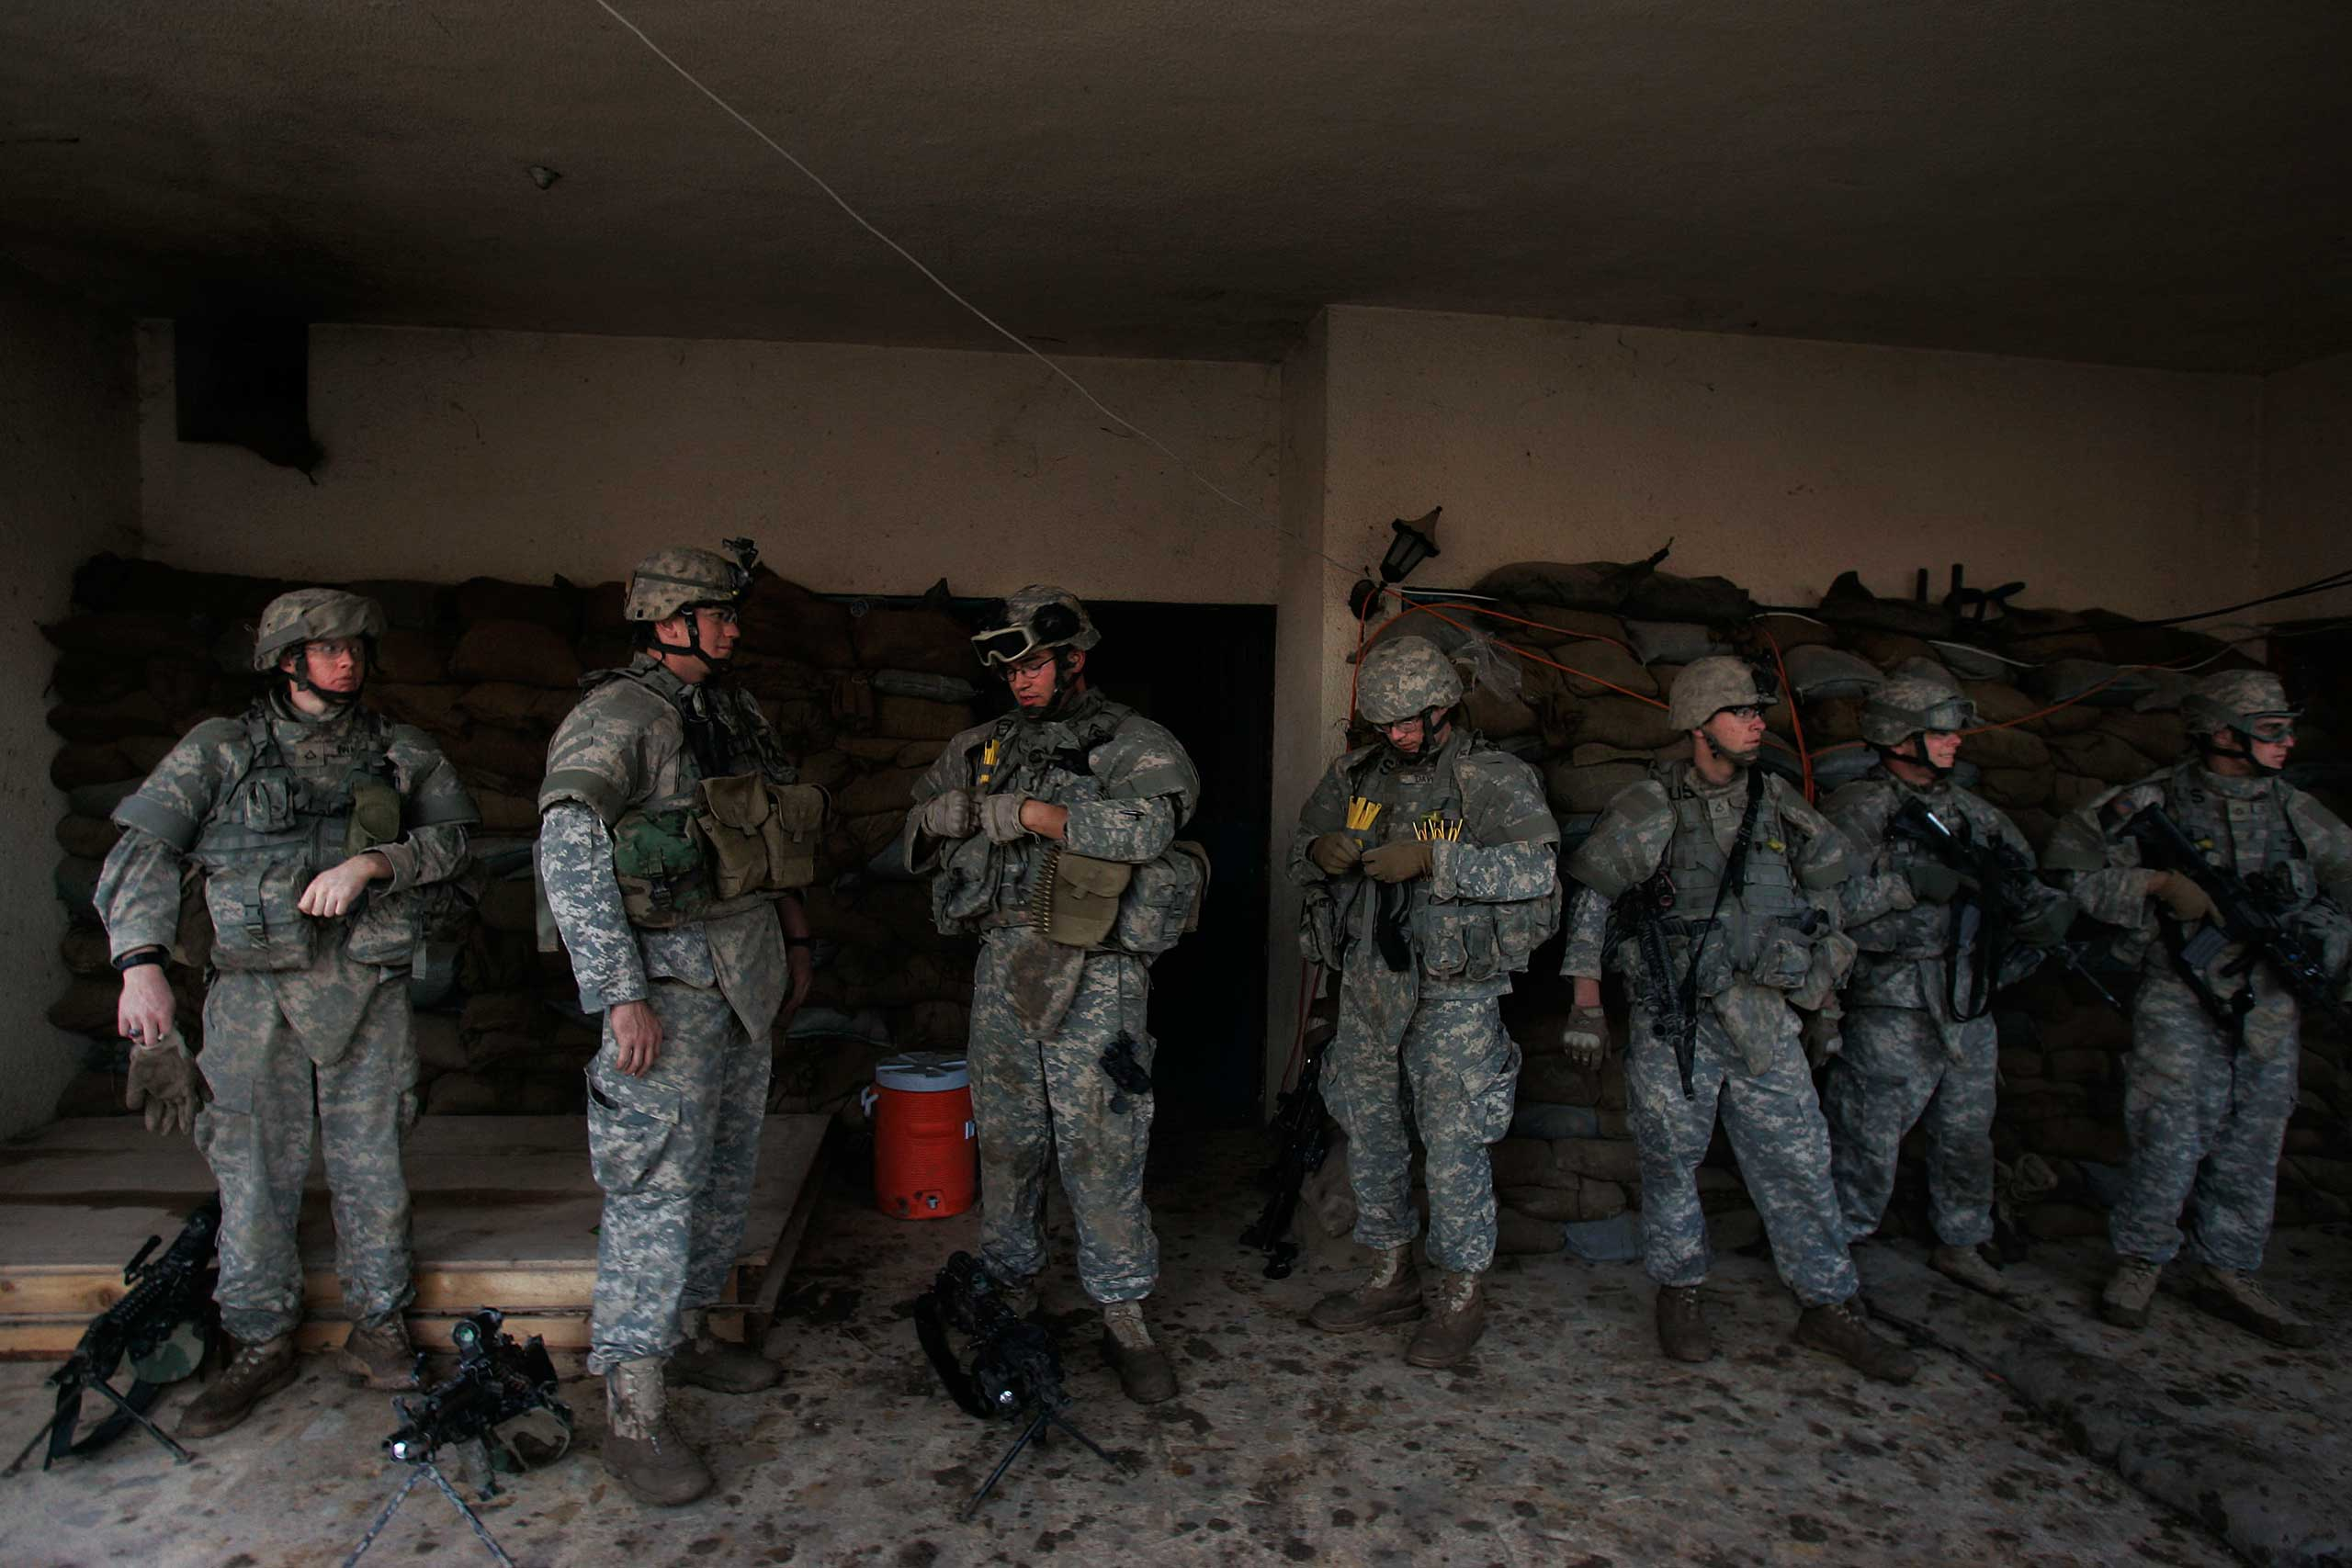 """<b>Iraq Withdrawal, Bush, 2007</b> President George W. Bush vetoed a war-spending bill in 2007 that called for the withdrawal of all military troops by the following year. """"It makes no sense to tell the enemy when you plan to start withdrawing,"""" the president said. U.S. troops left Iraq in 2011 under President Obama. (Photo: Soldiers return to Combat Outpost Casino after a mission in the Gazaliyah neighborhood of Baghdad, Iraq on Feb. 16, 2007.)"""